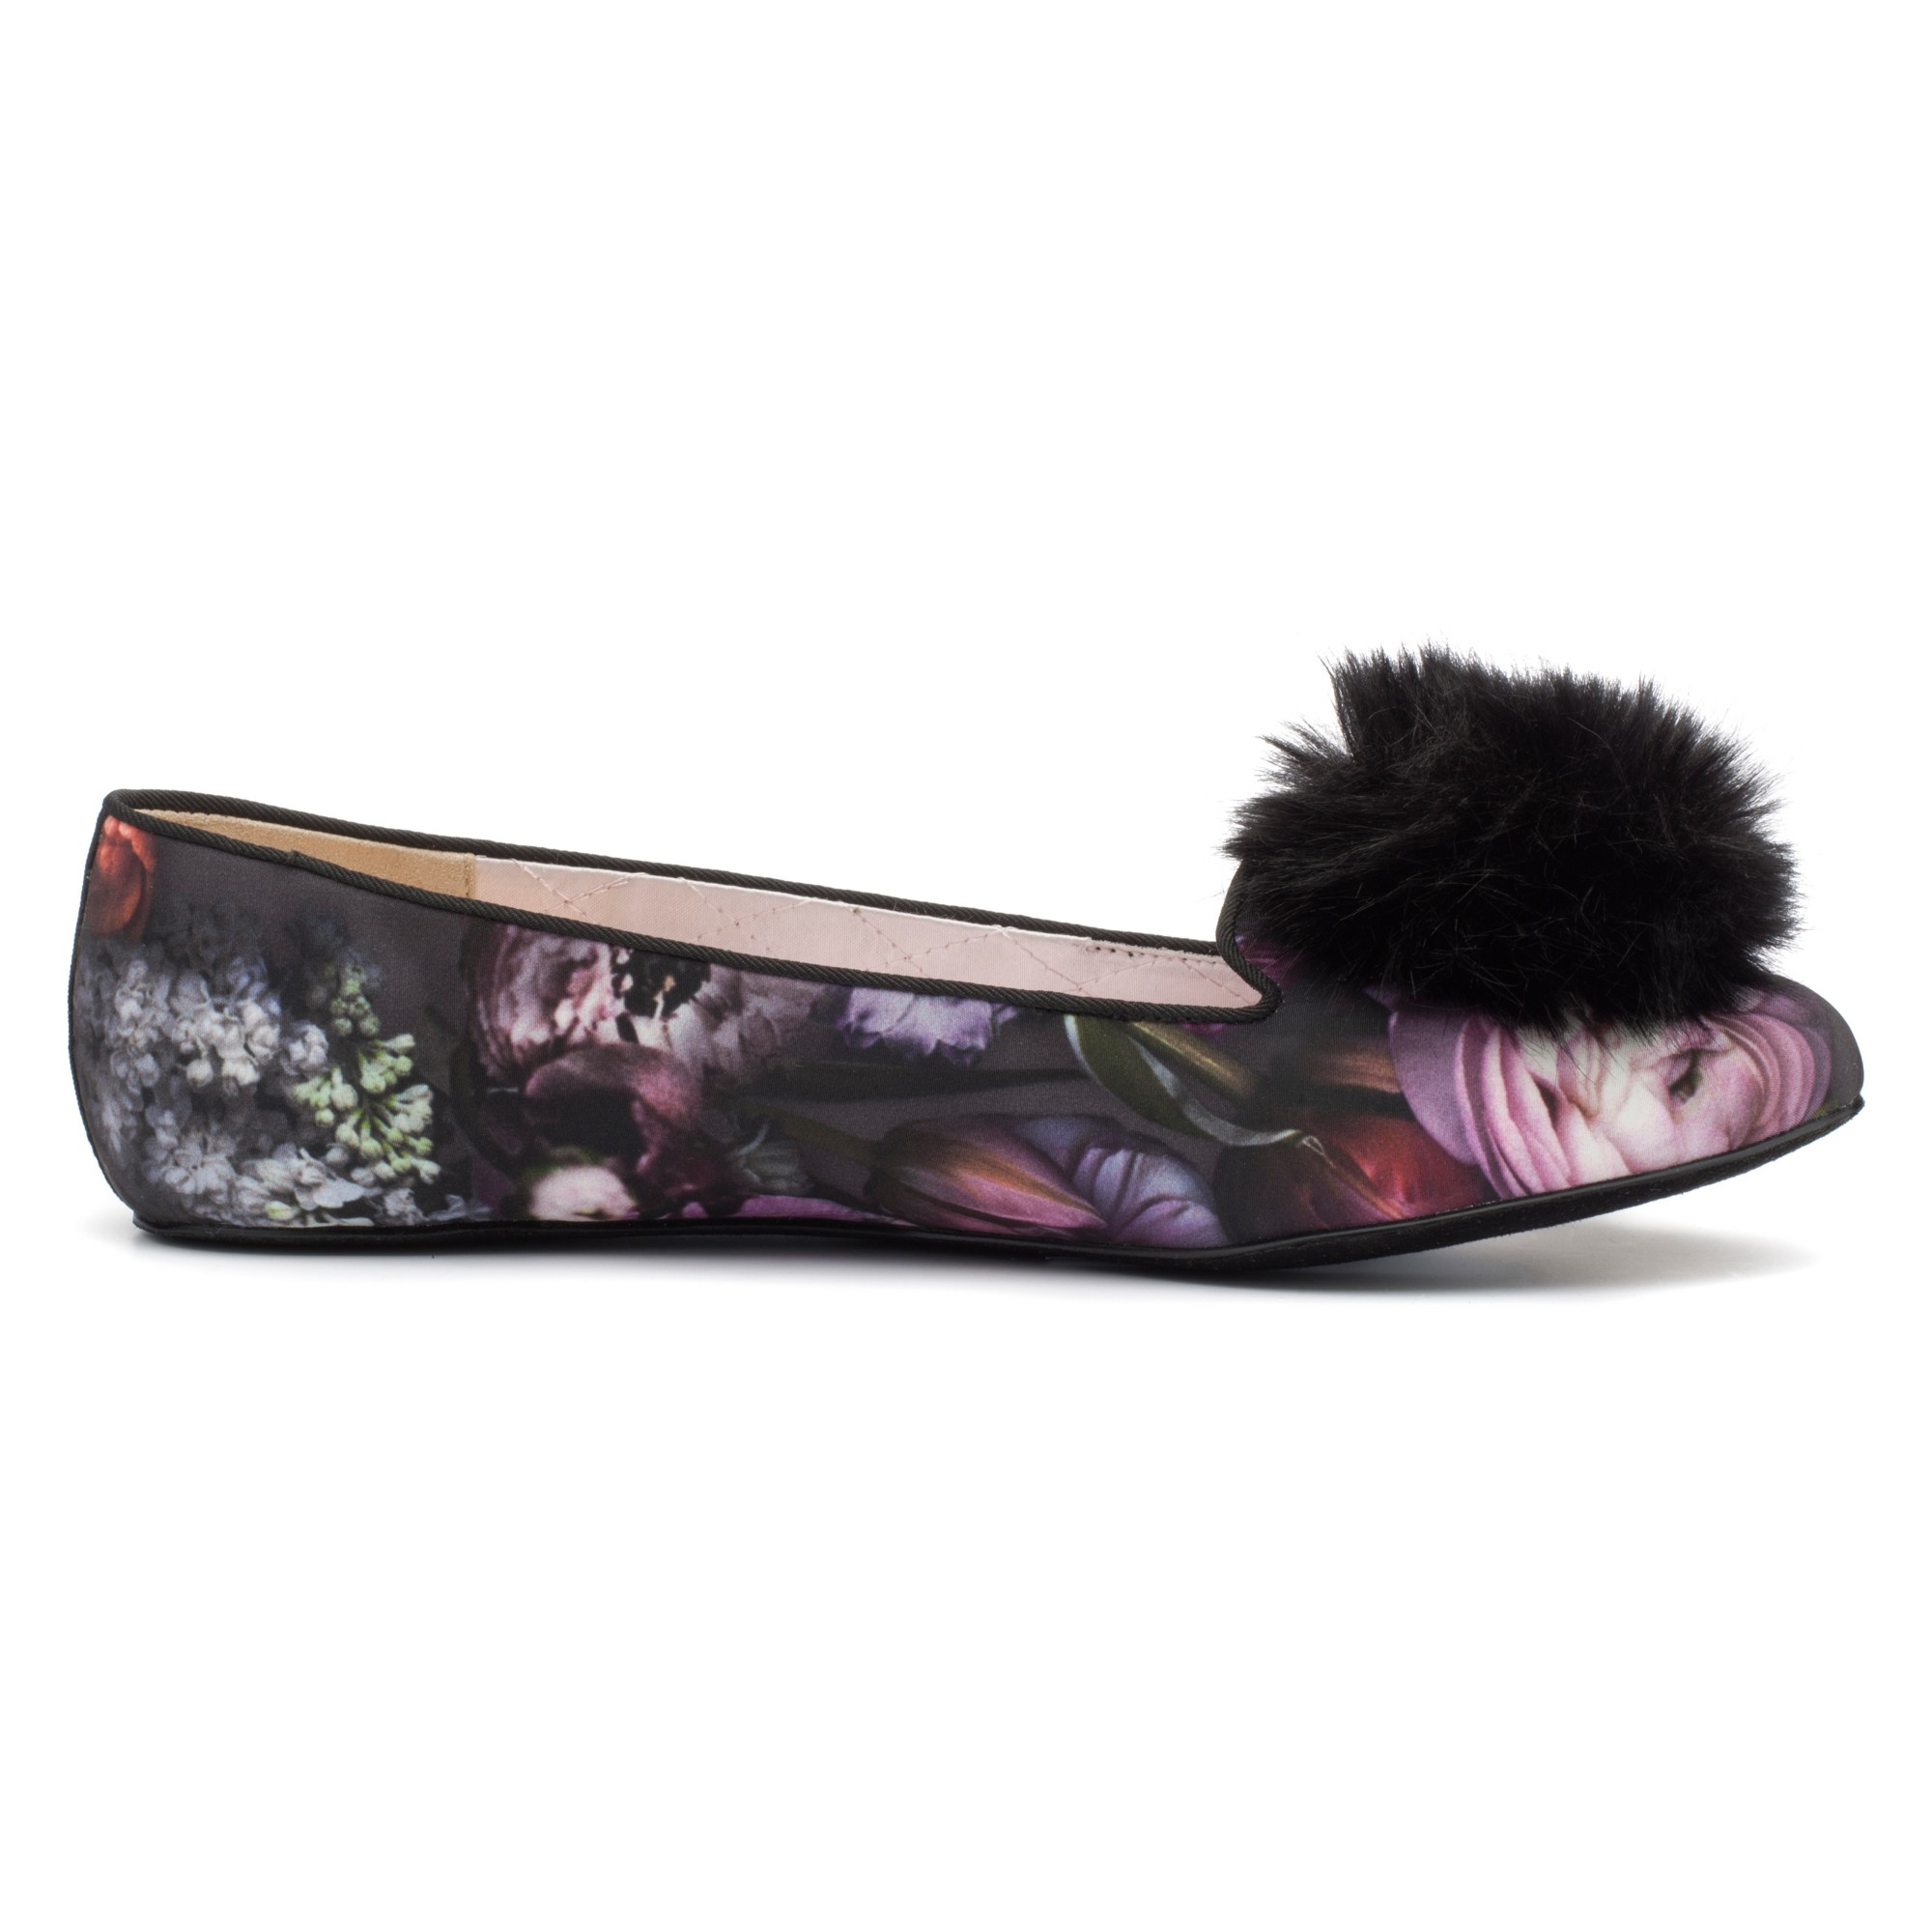 8ee0746c146551 Ted Baker Iveyed Pom Pom Slippers in Purple - Lyst